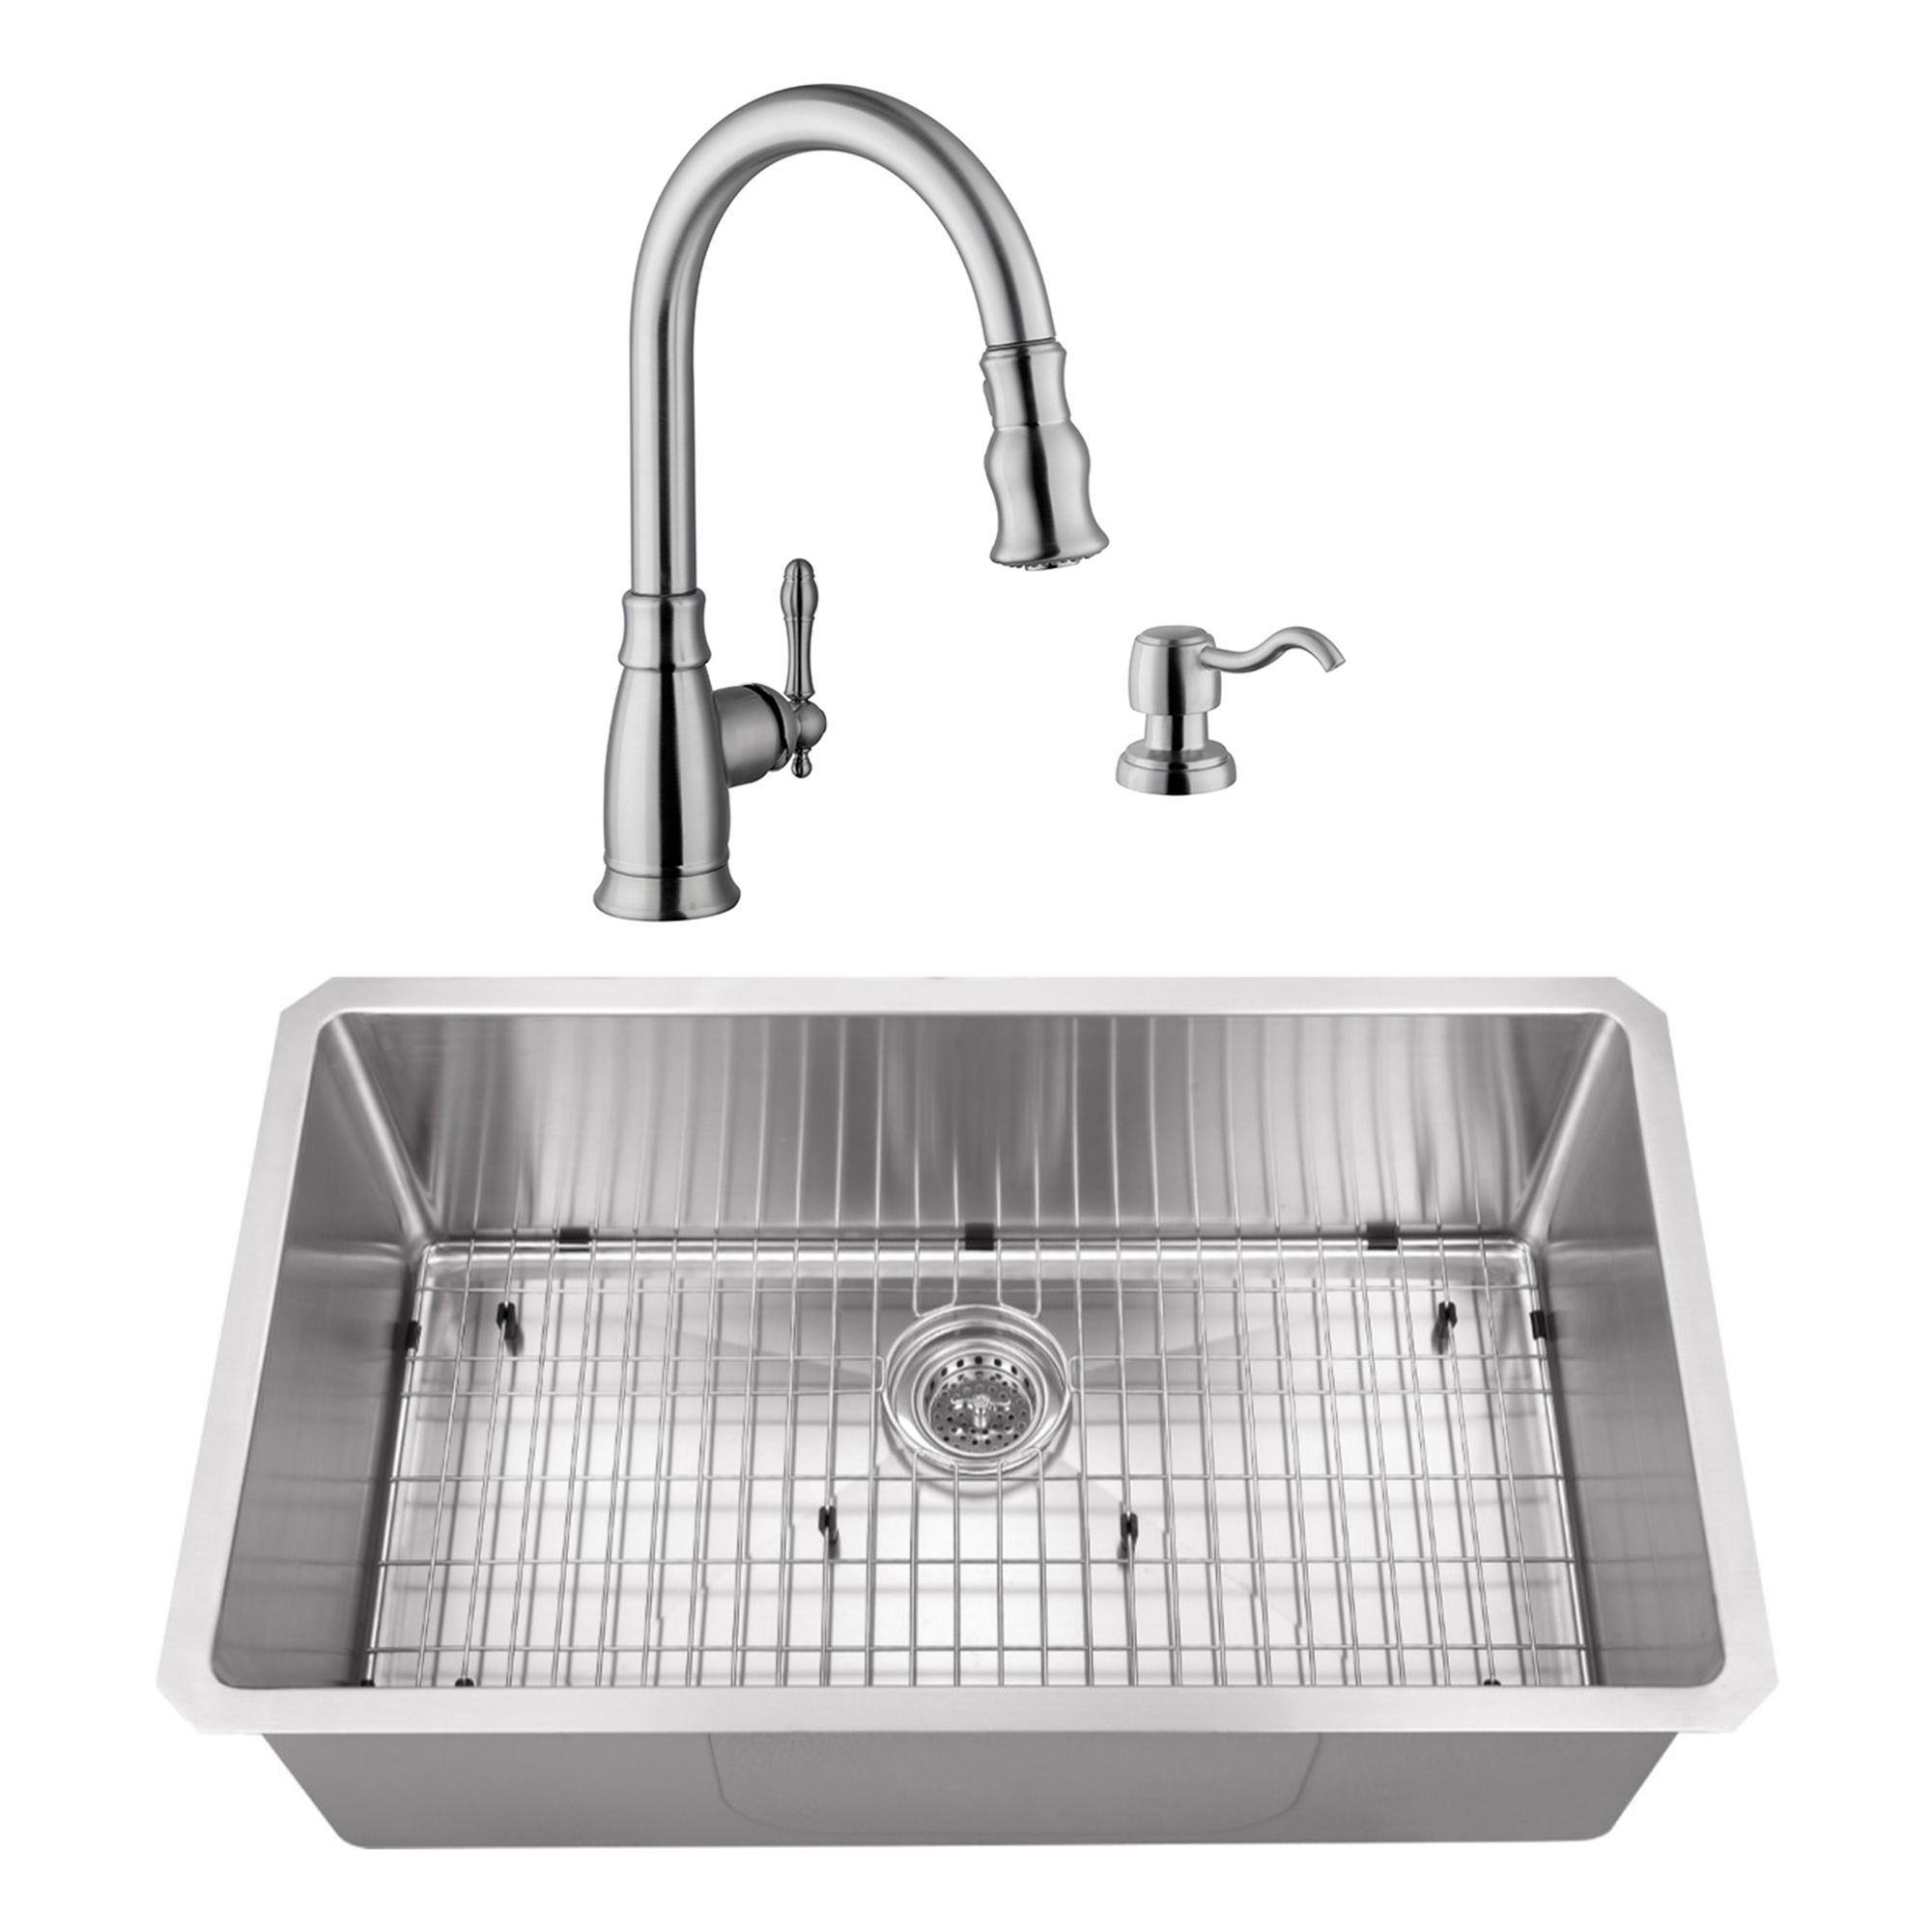 Cahaba Undermount 32 In Radius Corner 16 Ga Stainless Steel Kitchen Sink And Traditional 1 Handle Pull Down Kitchen Faucet With Dispenser In Brushed Nickel Brushed Nickel Faucet Stainless Steel Kitchen Double Bowl